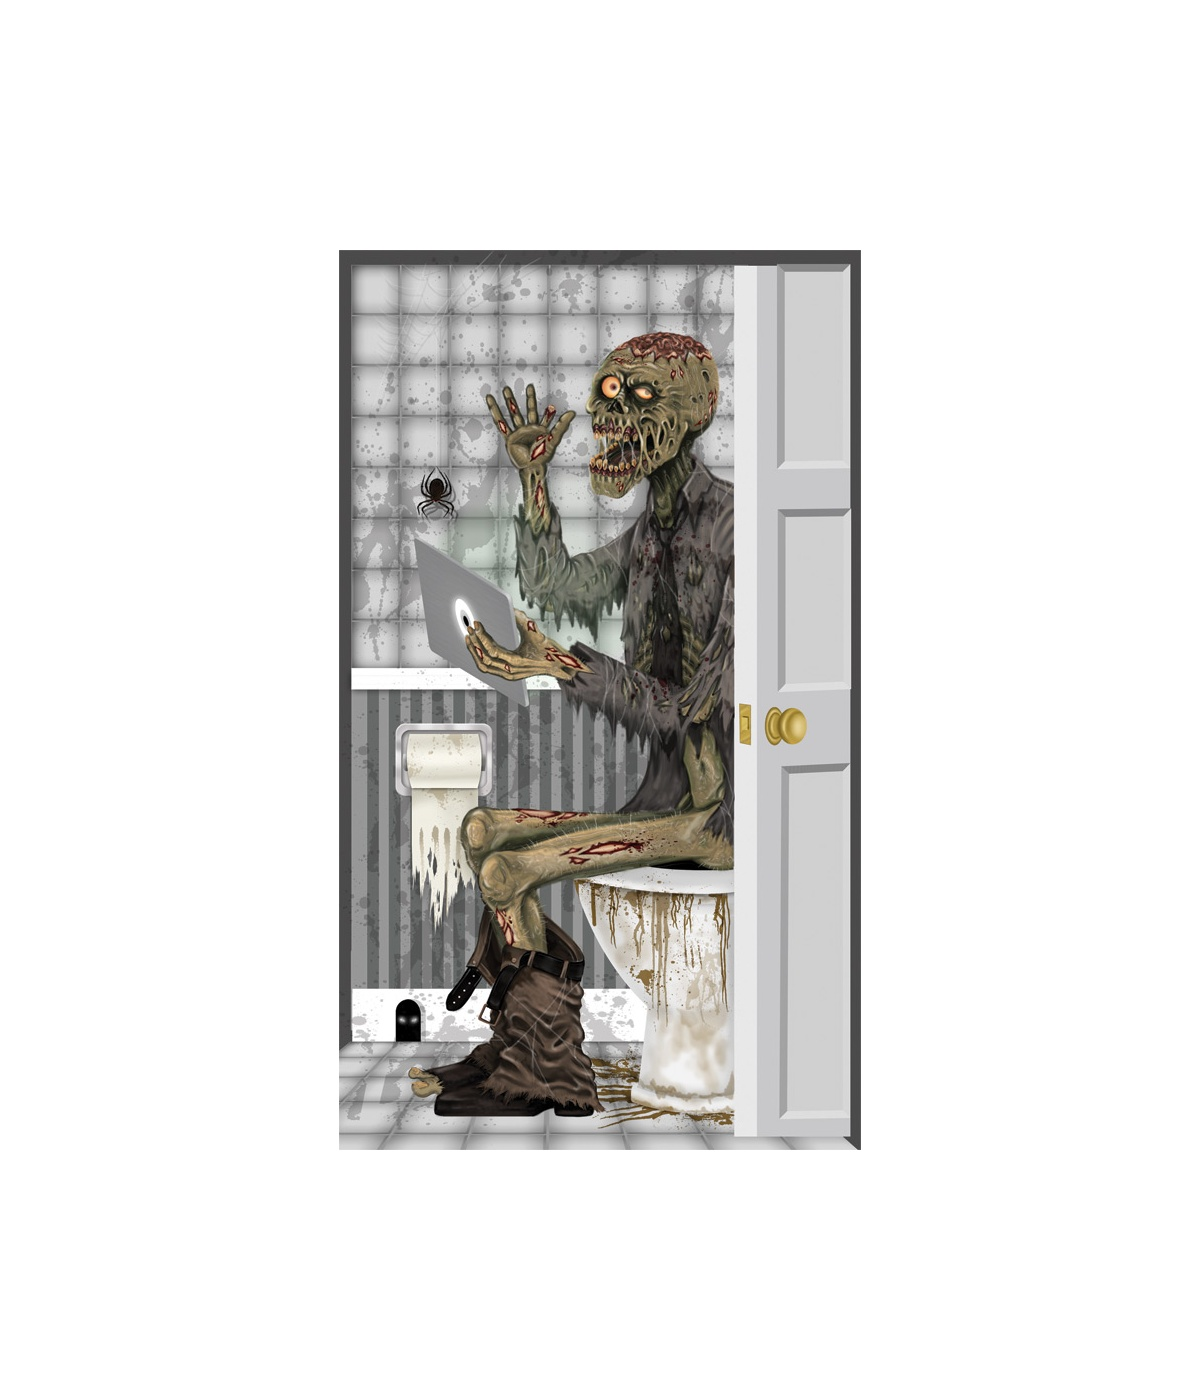 Zombie toilet door cover decoration props decorations for Zombie bathroom decor